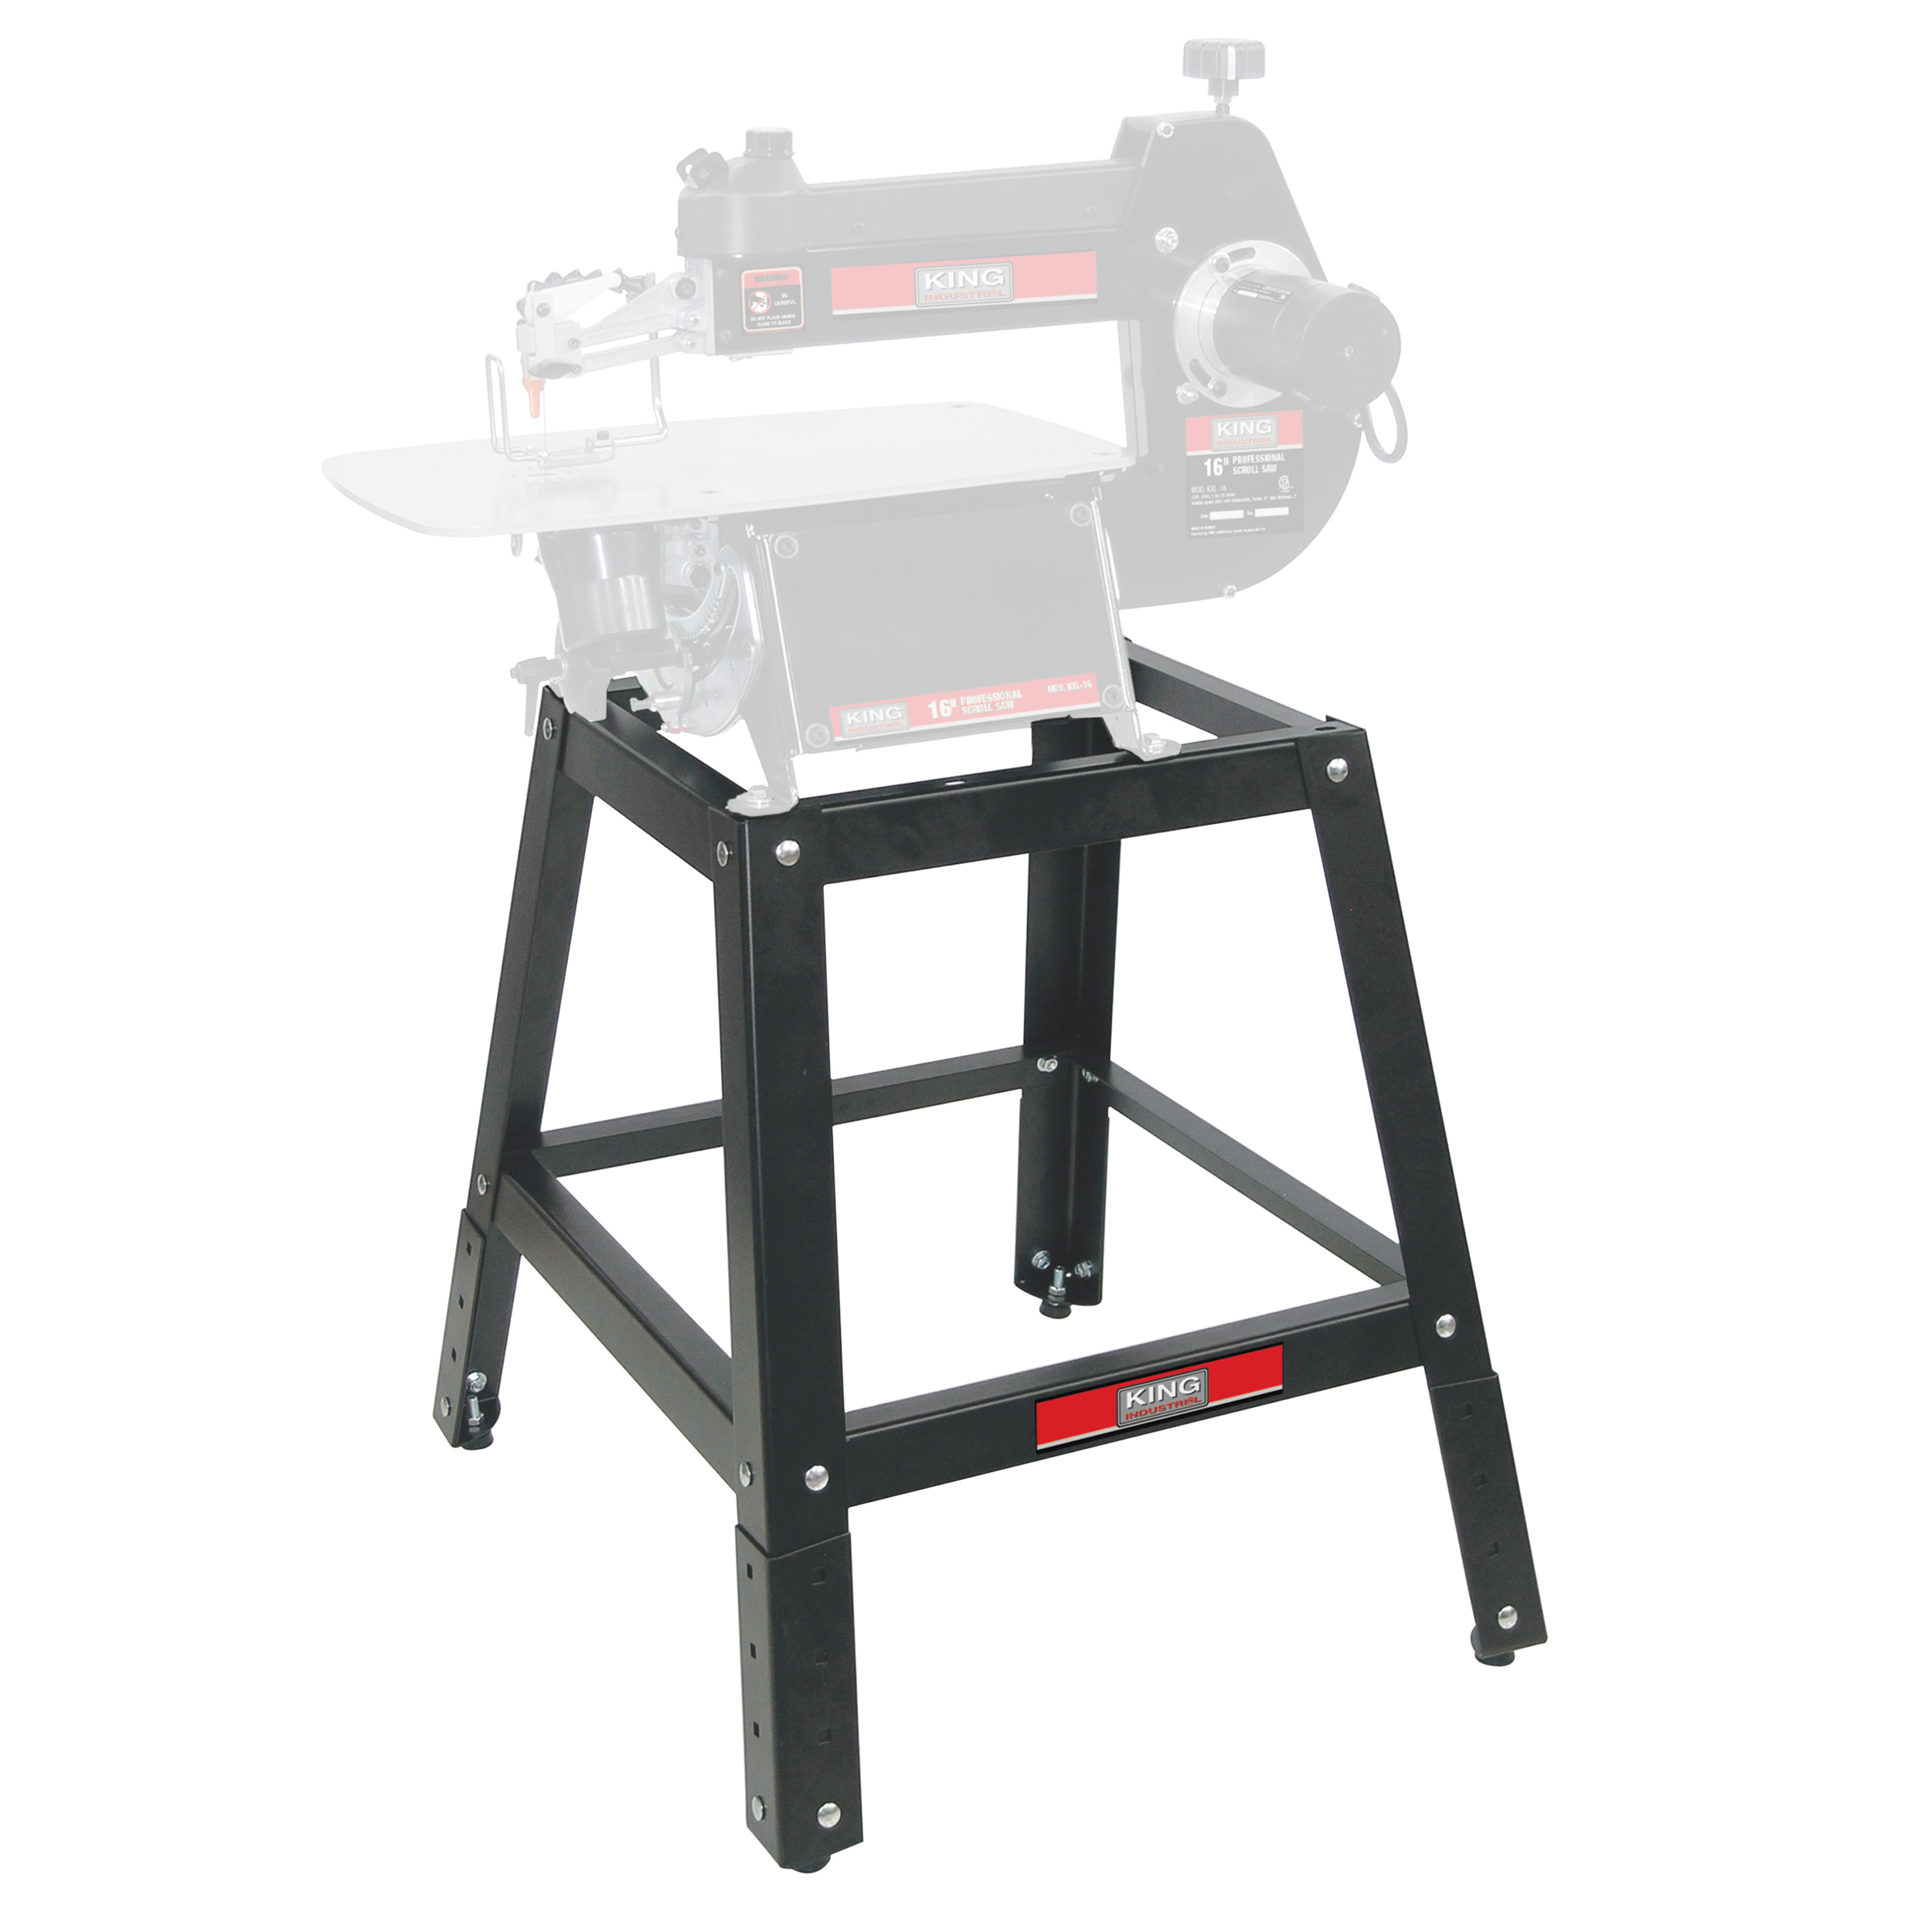 Stand for King Industrial 16 or 21 Inch Scroll Saw, Stand Only by King Global Sourcing Inc